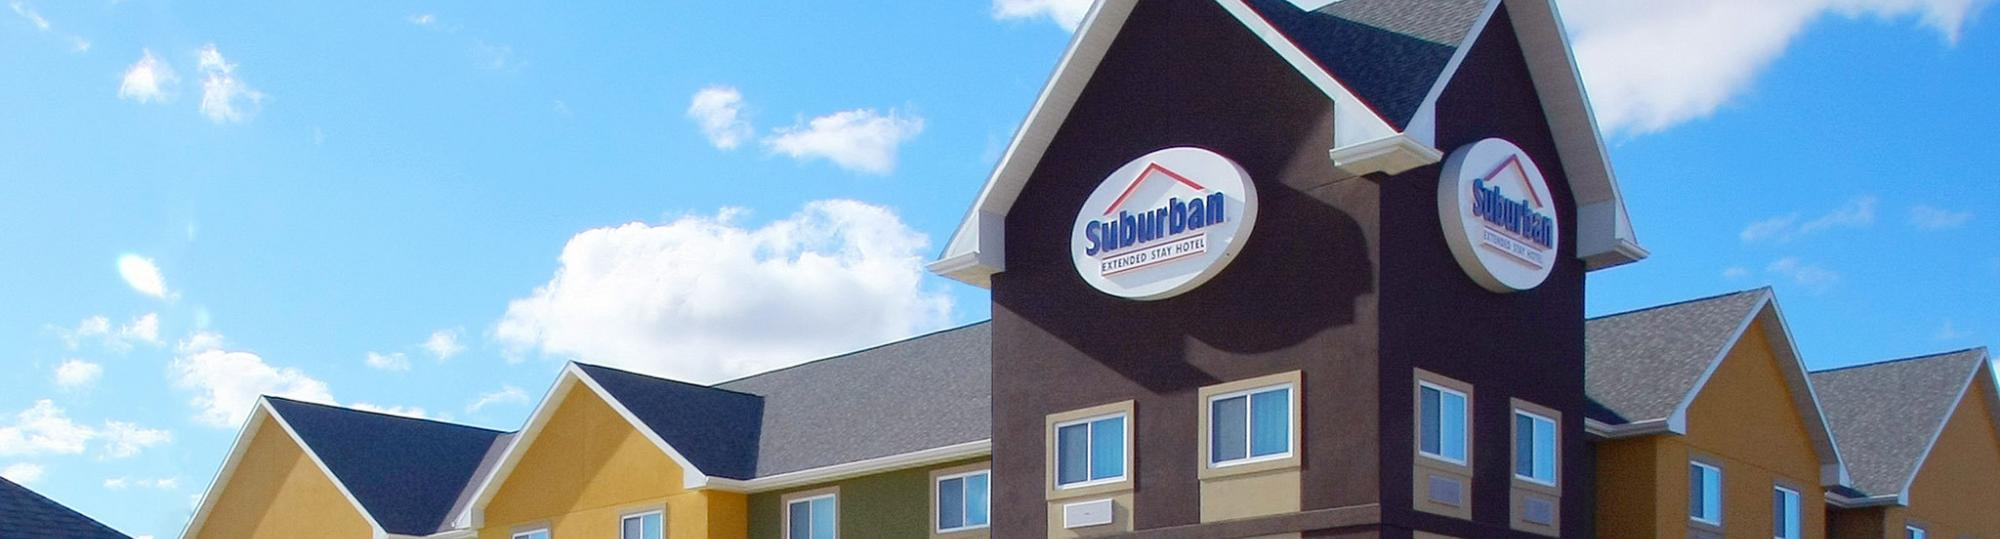 Suburban Extended Stay Hotel Military Discounts with Veterans Advantage